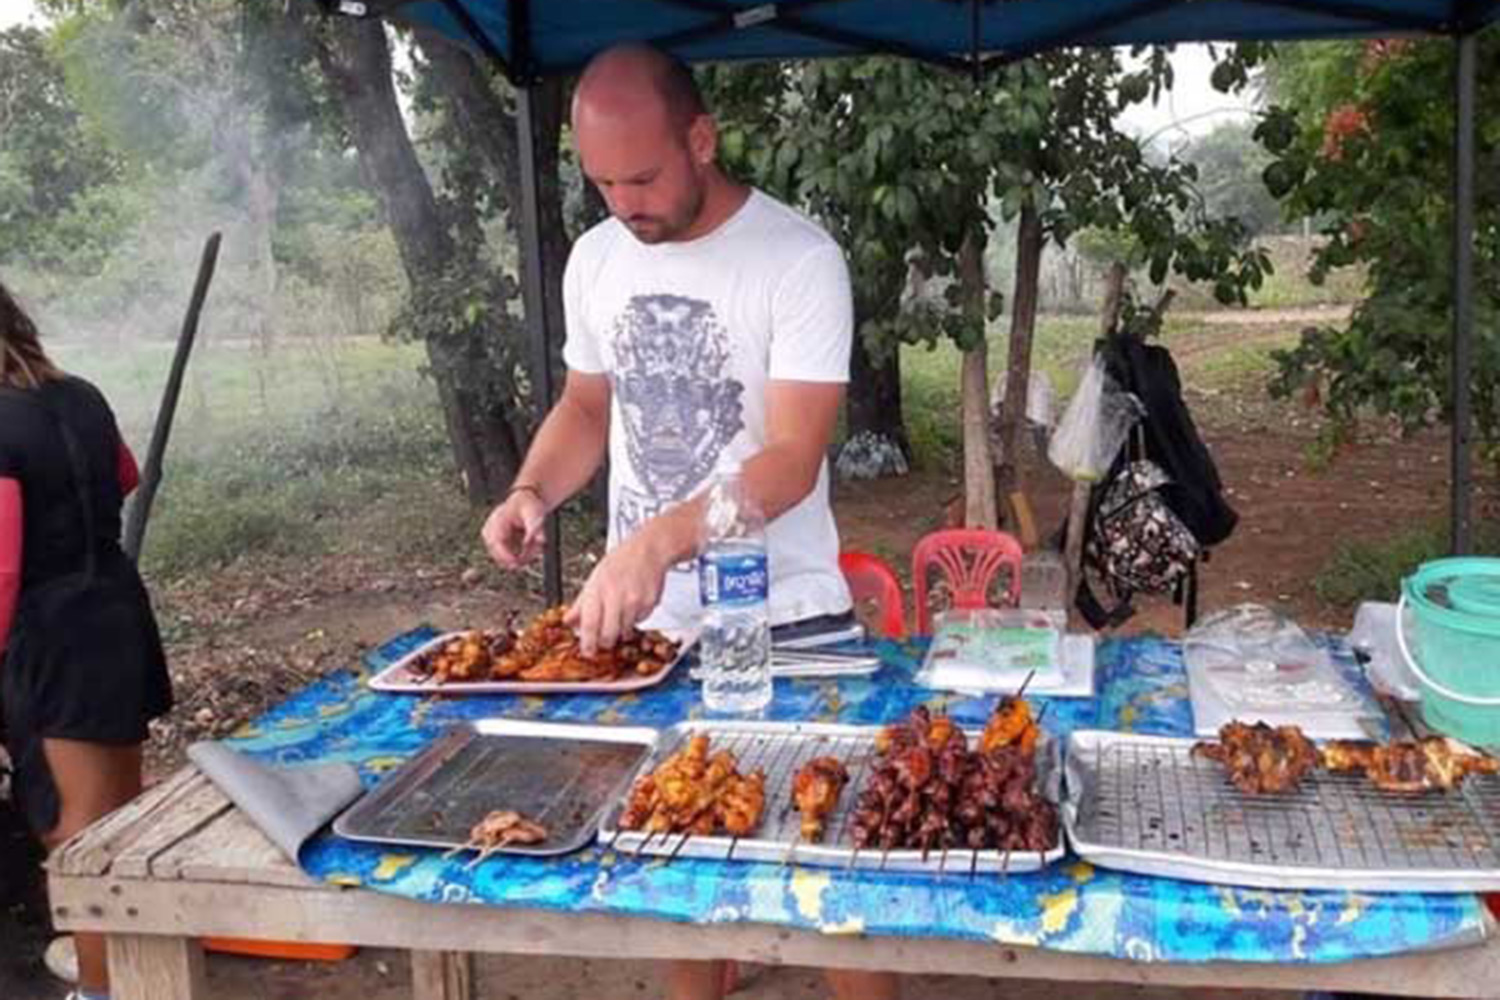 German national Maximilian Fernsebner, 34, won praise on social media after images showing him helping his Thai wife sell grilled chicken in Pak Chong district, Nakhon Ratchasima, went viral online. His instant popularity drew the attention of police, who learned he is wanted on an Interpol red notice. He is now awaiting deportation to Germany to stand trial. (Supplied photo via Wassayos Ngamkham)